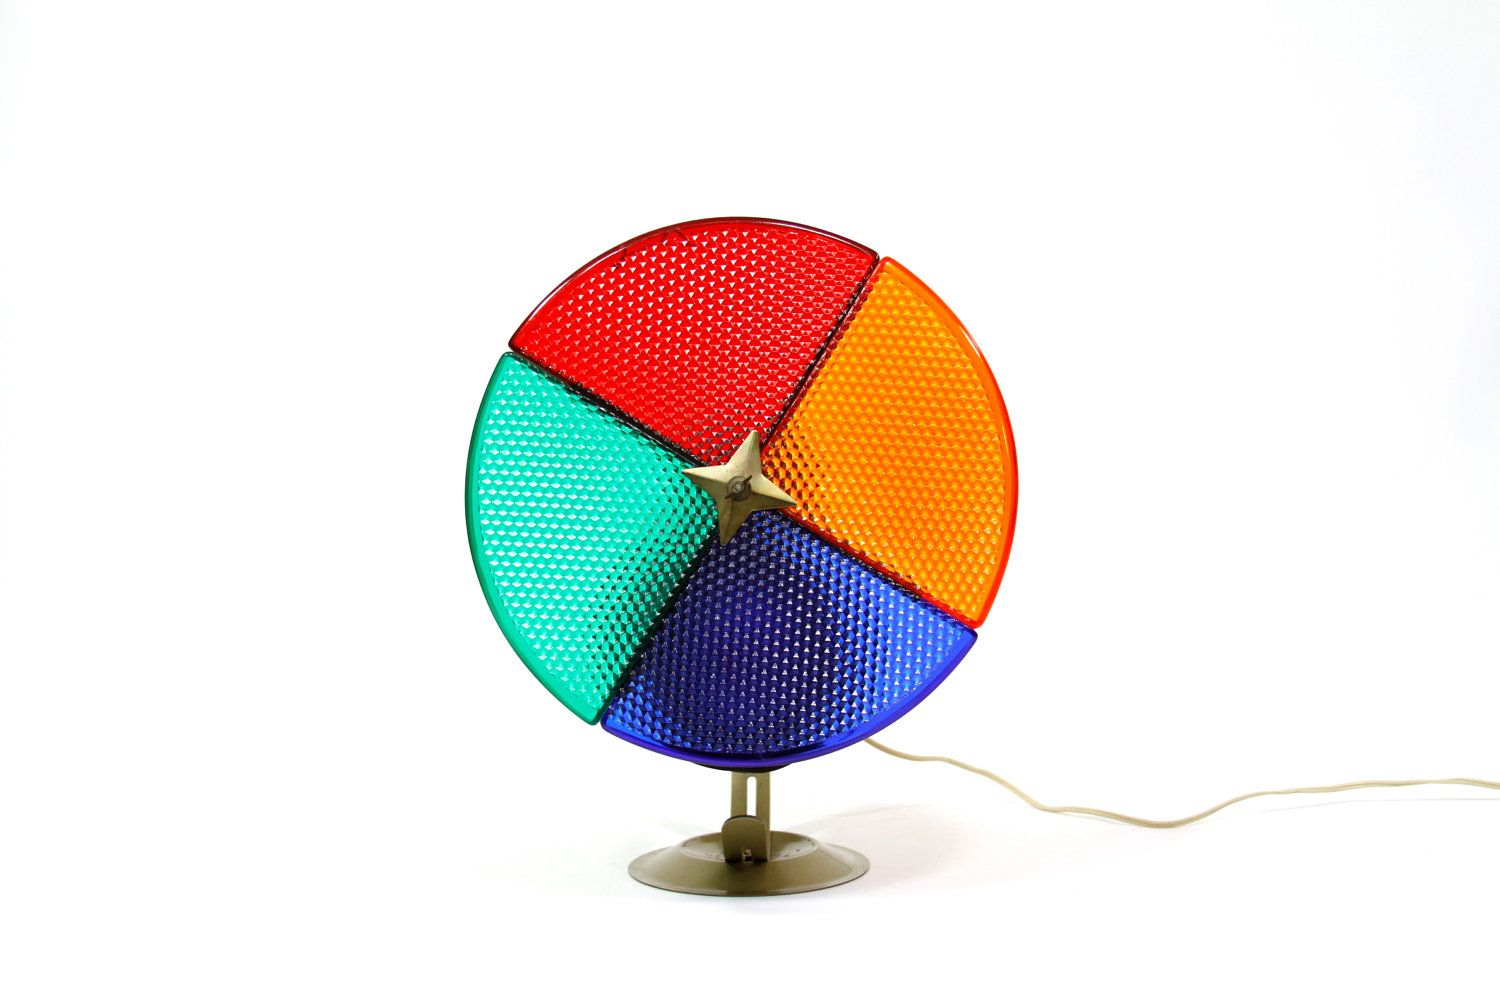 Spinning Color Wheel Light my grandparents had one of